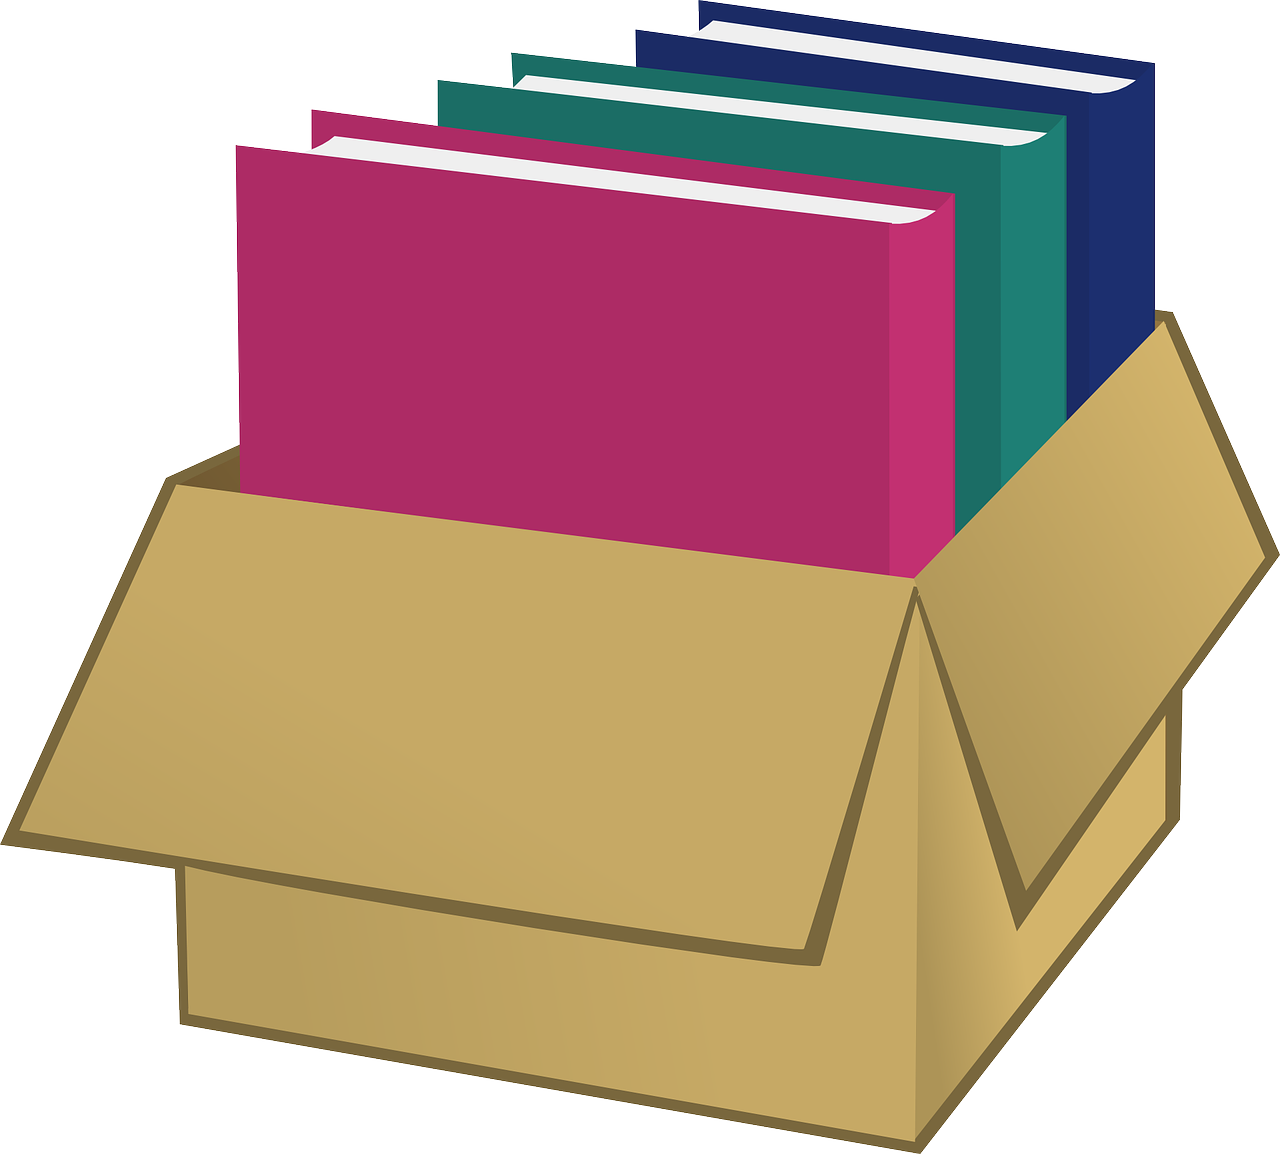 Clipart book store clip free stock Book Promotion for Indie Authors: Working with Bookstores - BookWorks clip free stock